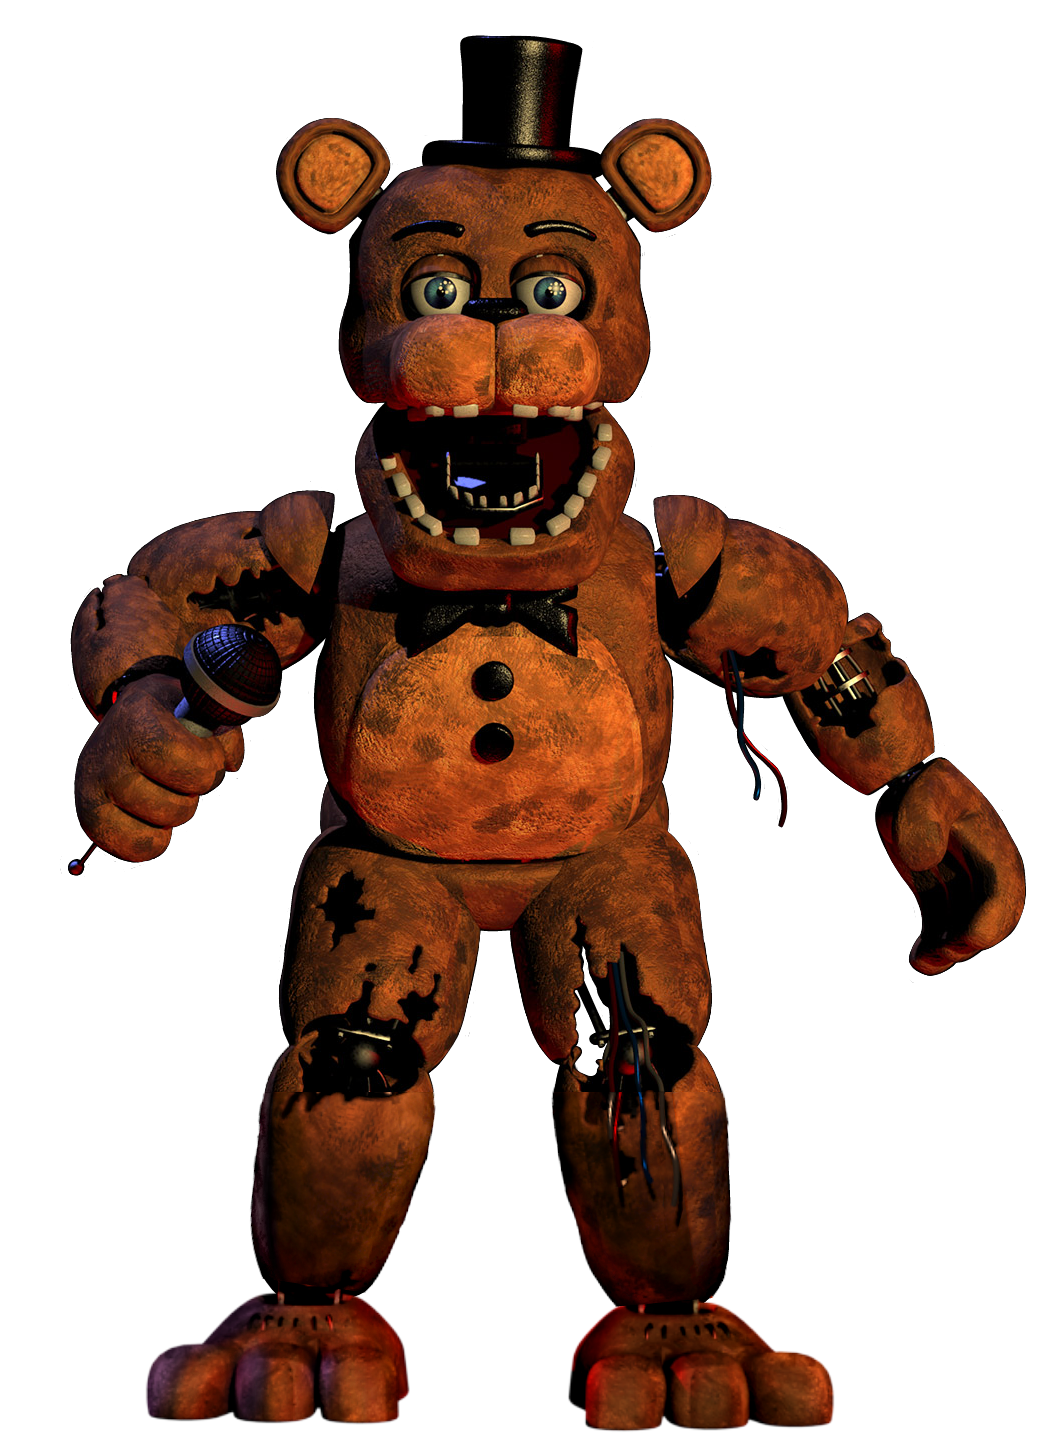 image w freddy render full body png five nights at freddy s